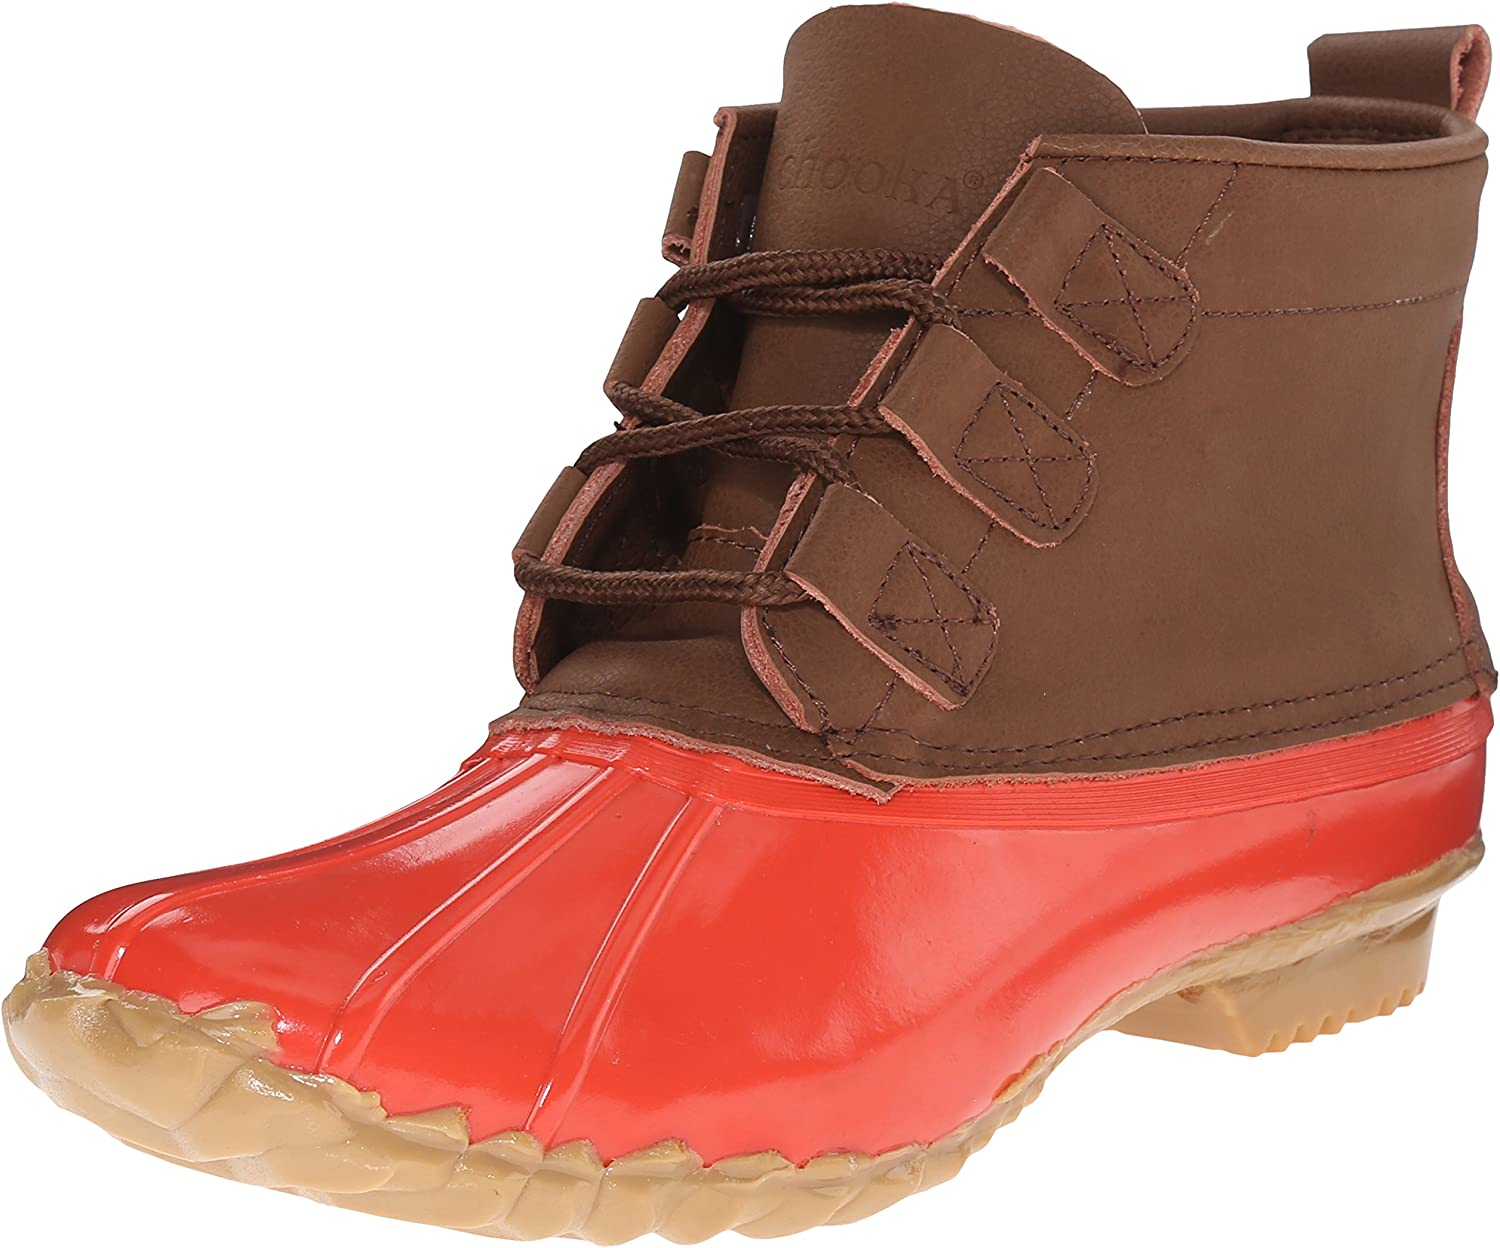 Chooka Women's Low Duck Bootie Rain Boot